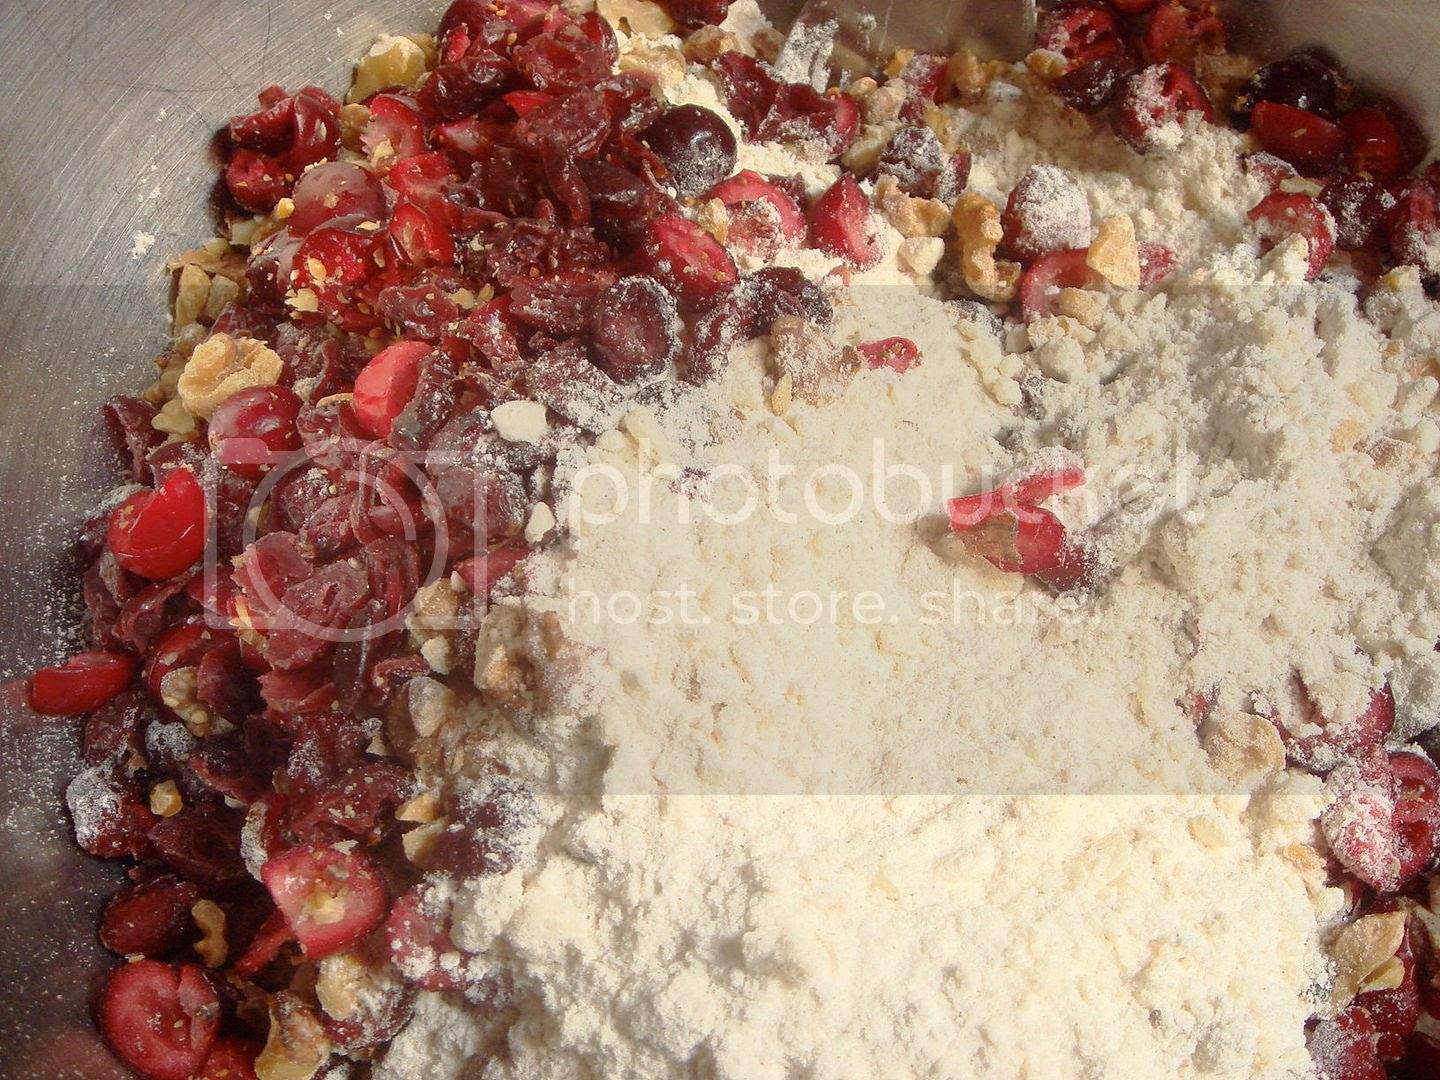 dry stuff and cranberries